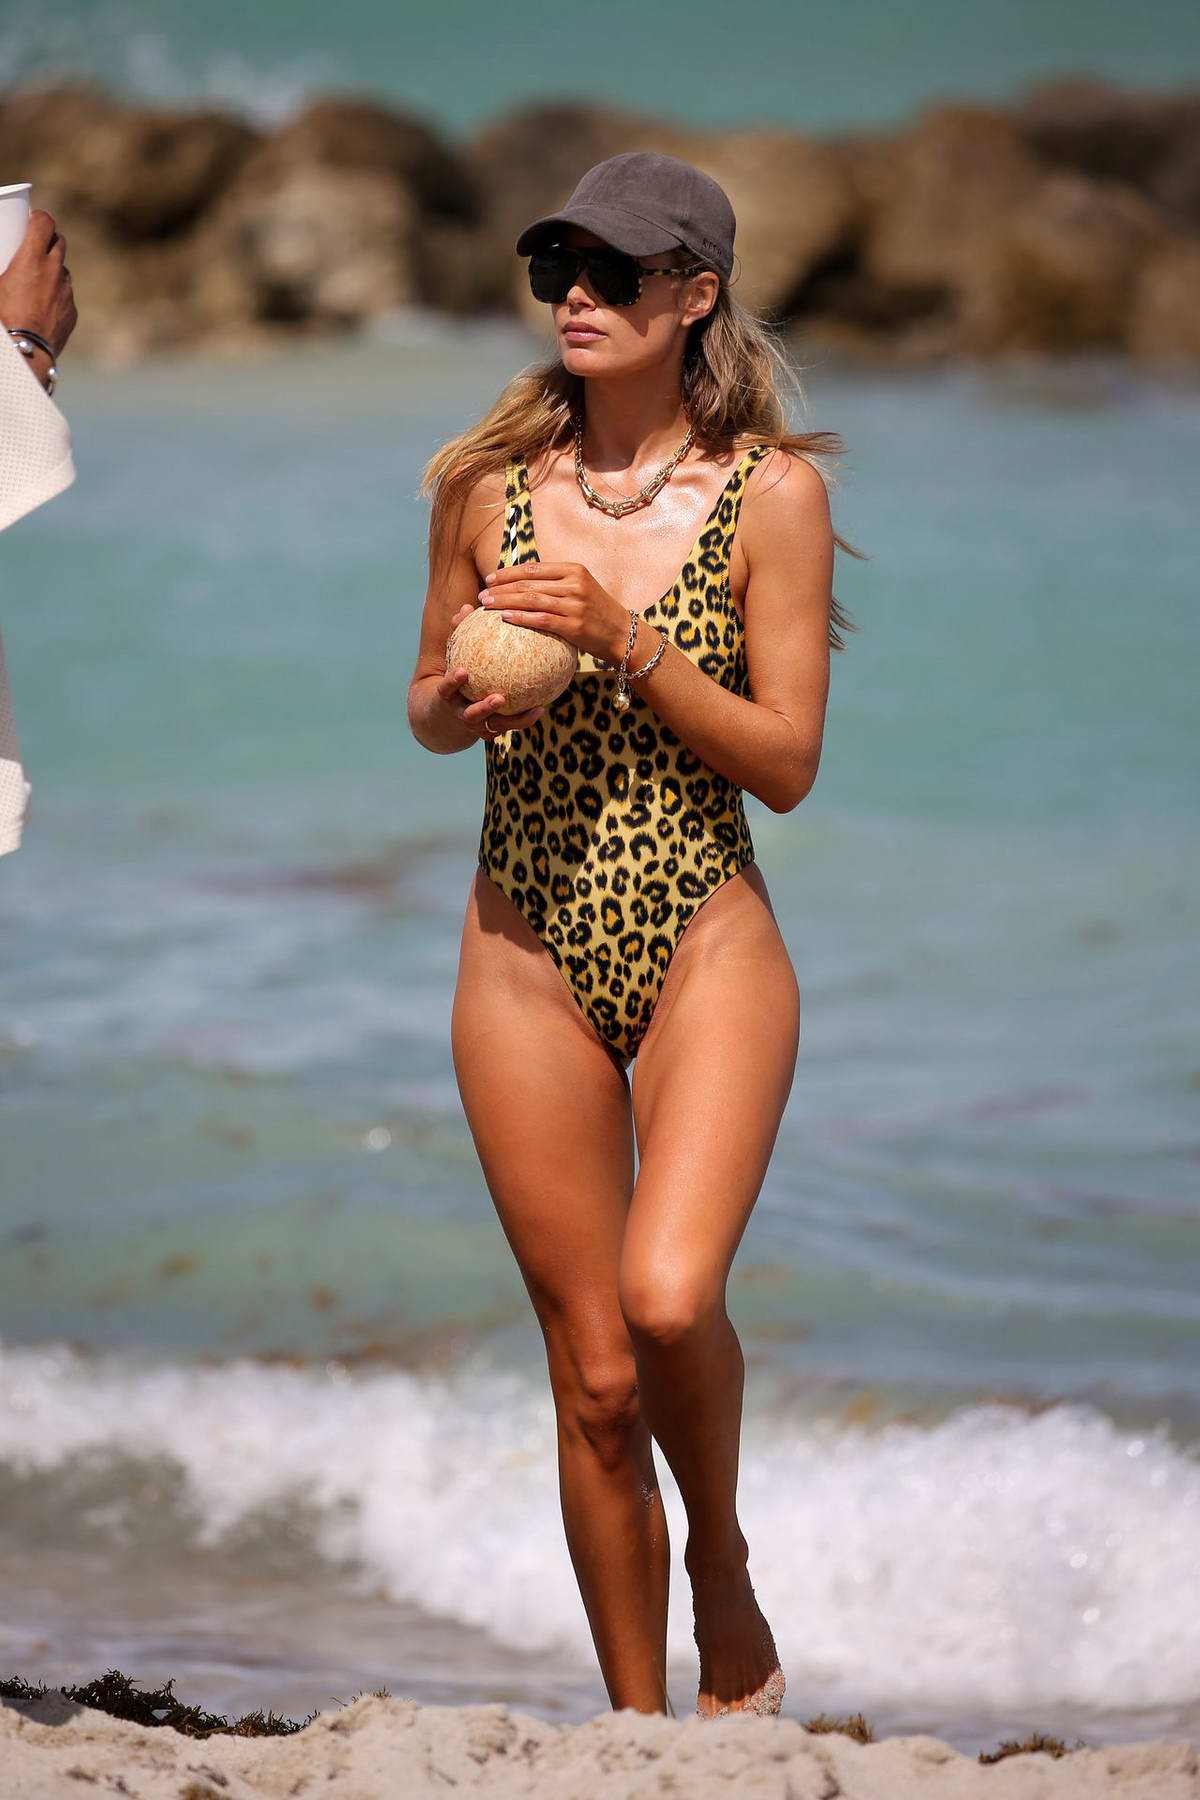 Doutzen Kroes stuns in a leopard print swimsuit during a beach day in Miami, Florida